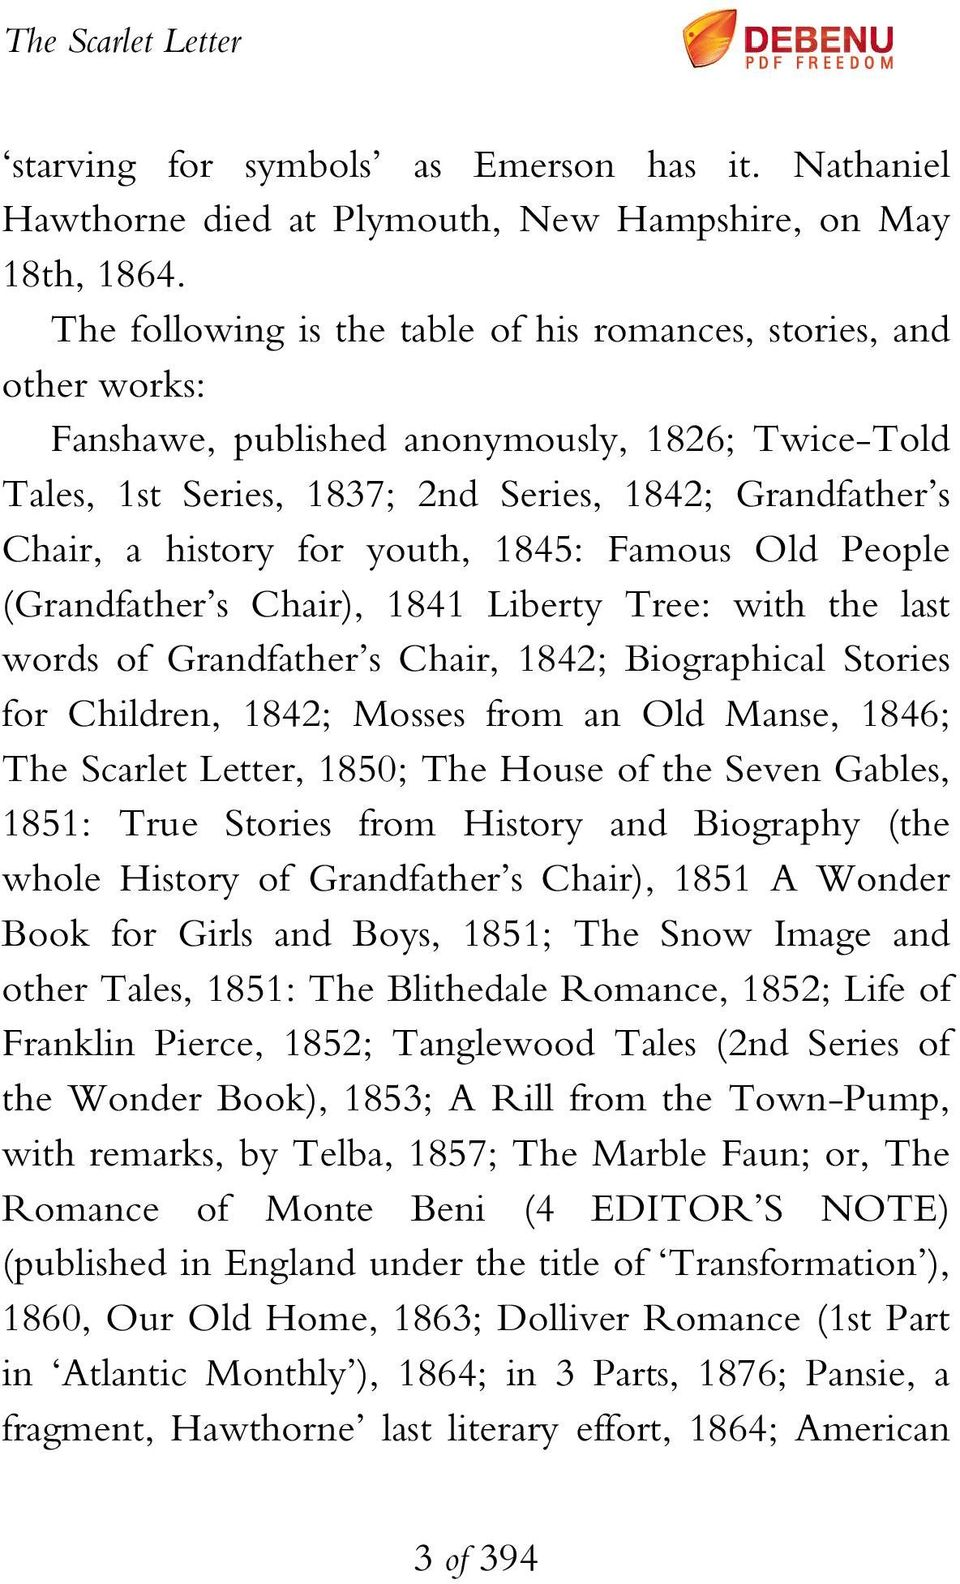 youth, 1845: Famous Old People (Grandfather s Chair), 1841 Liberty Tree: with the last words of Grandfather s Chair, 1842; Biographical Stories for Children, 1842; Mosses from an Old Manse, 1846; The